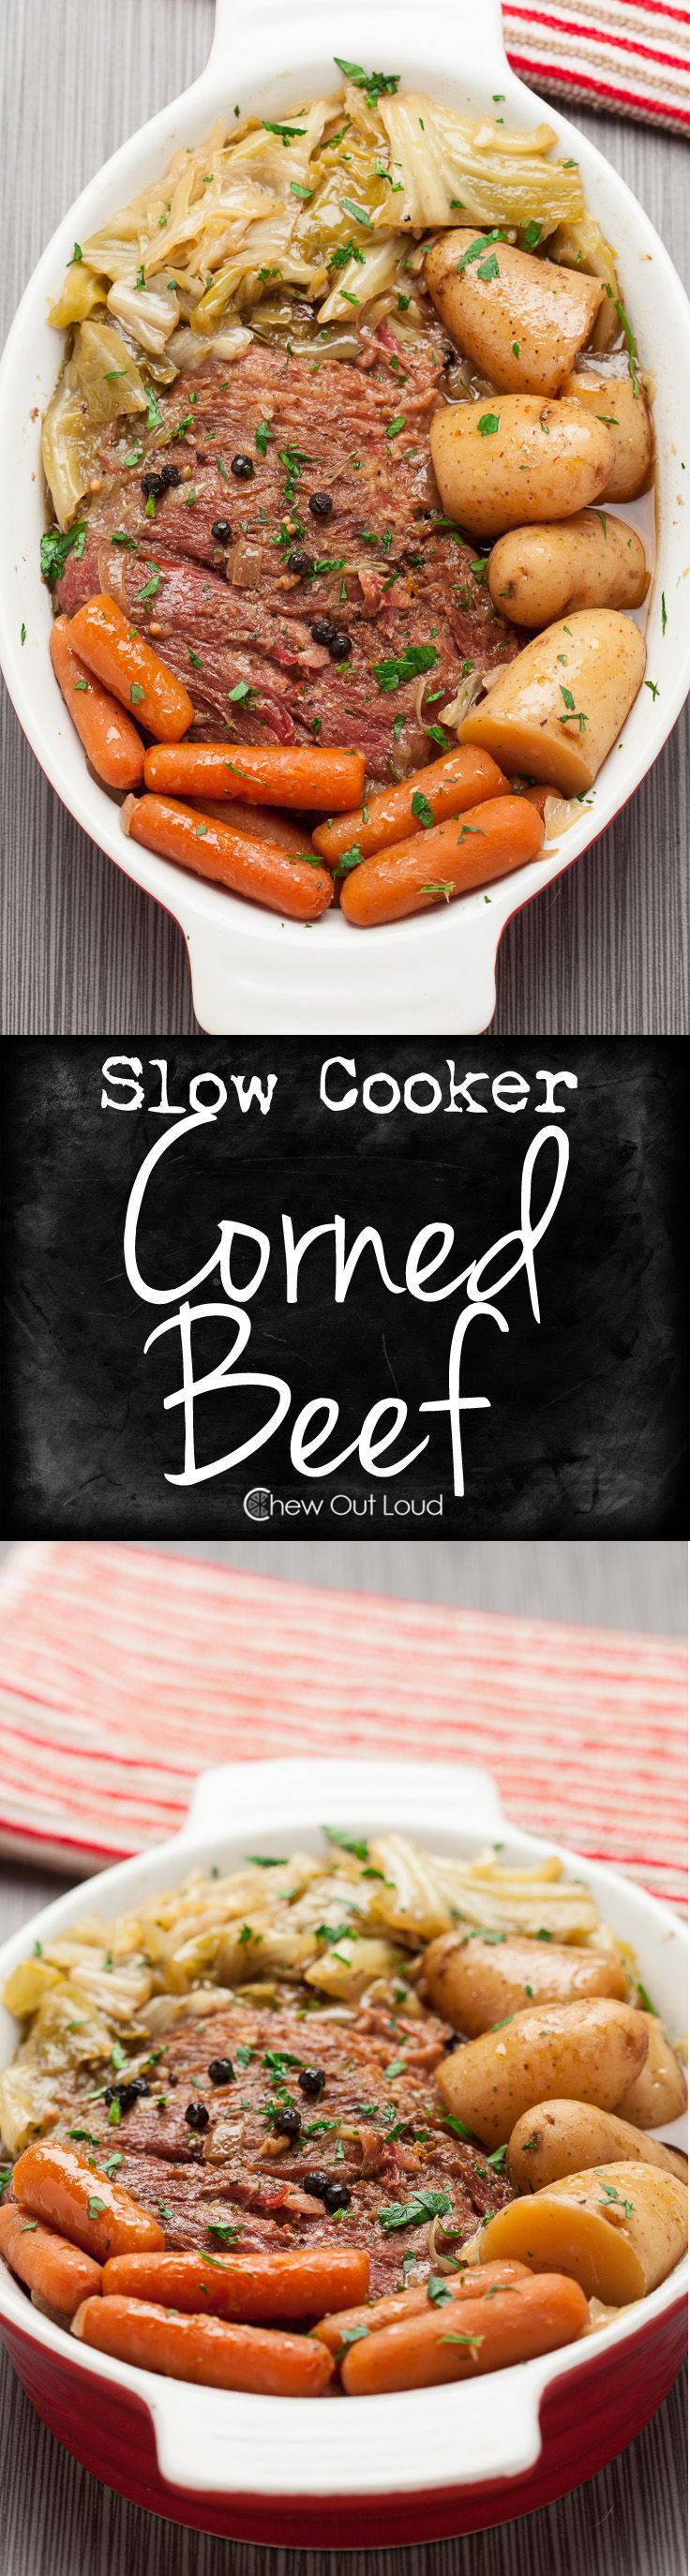 So tender, you don't even need a knife. So easy and delicious, they'll ask you to make it again and you'll be happy to. #beef #dinner #recipe